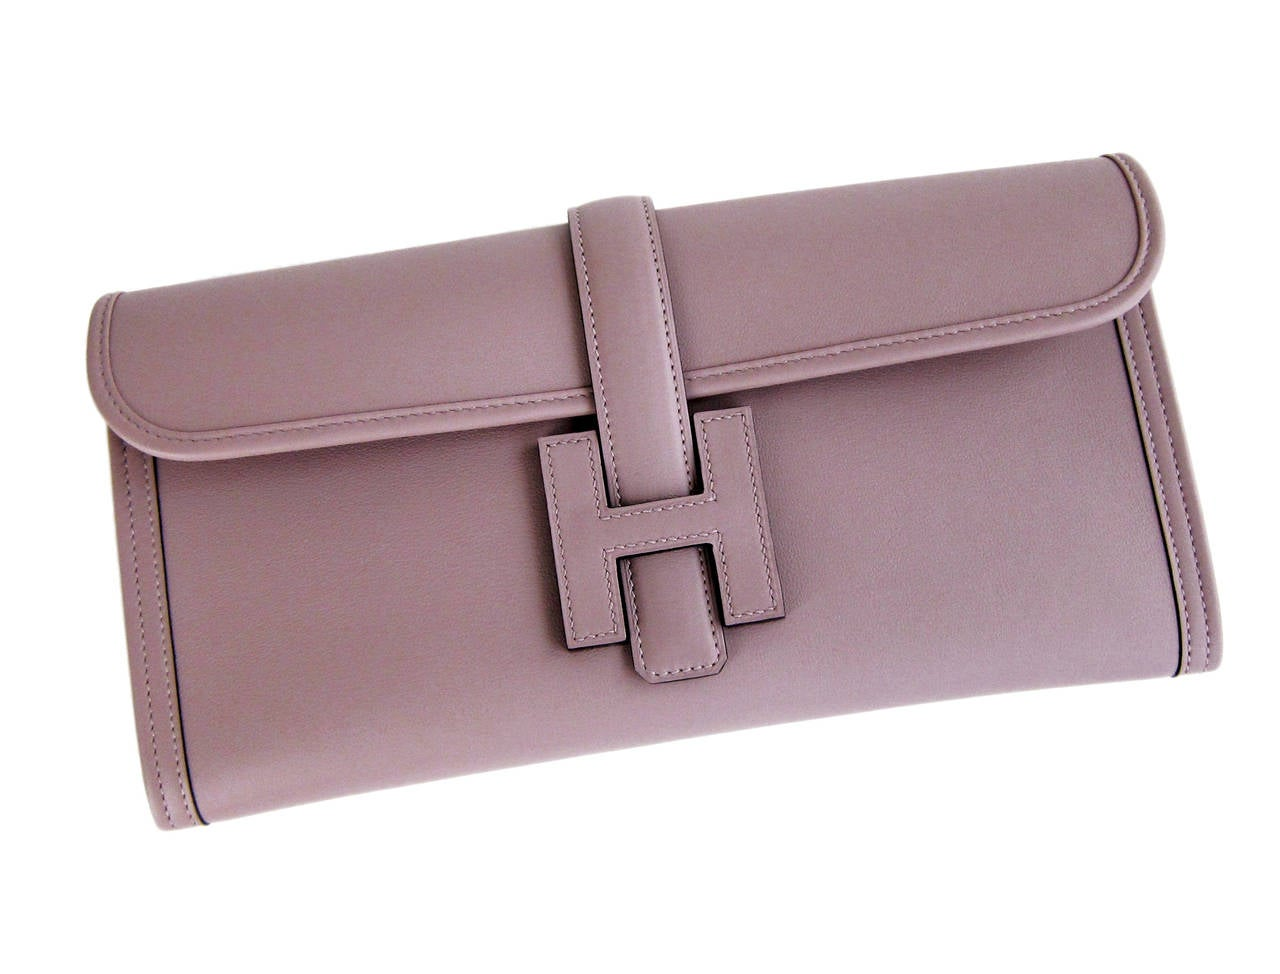 HERMES Glycine Lilac Jige Swift Elan Leather Clutch 29cm So Pretty! 2